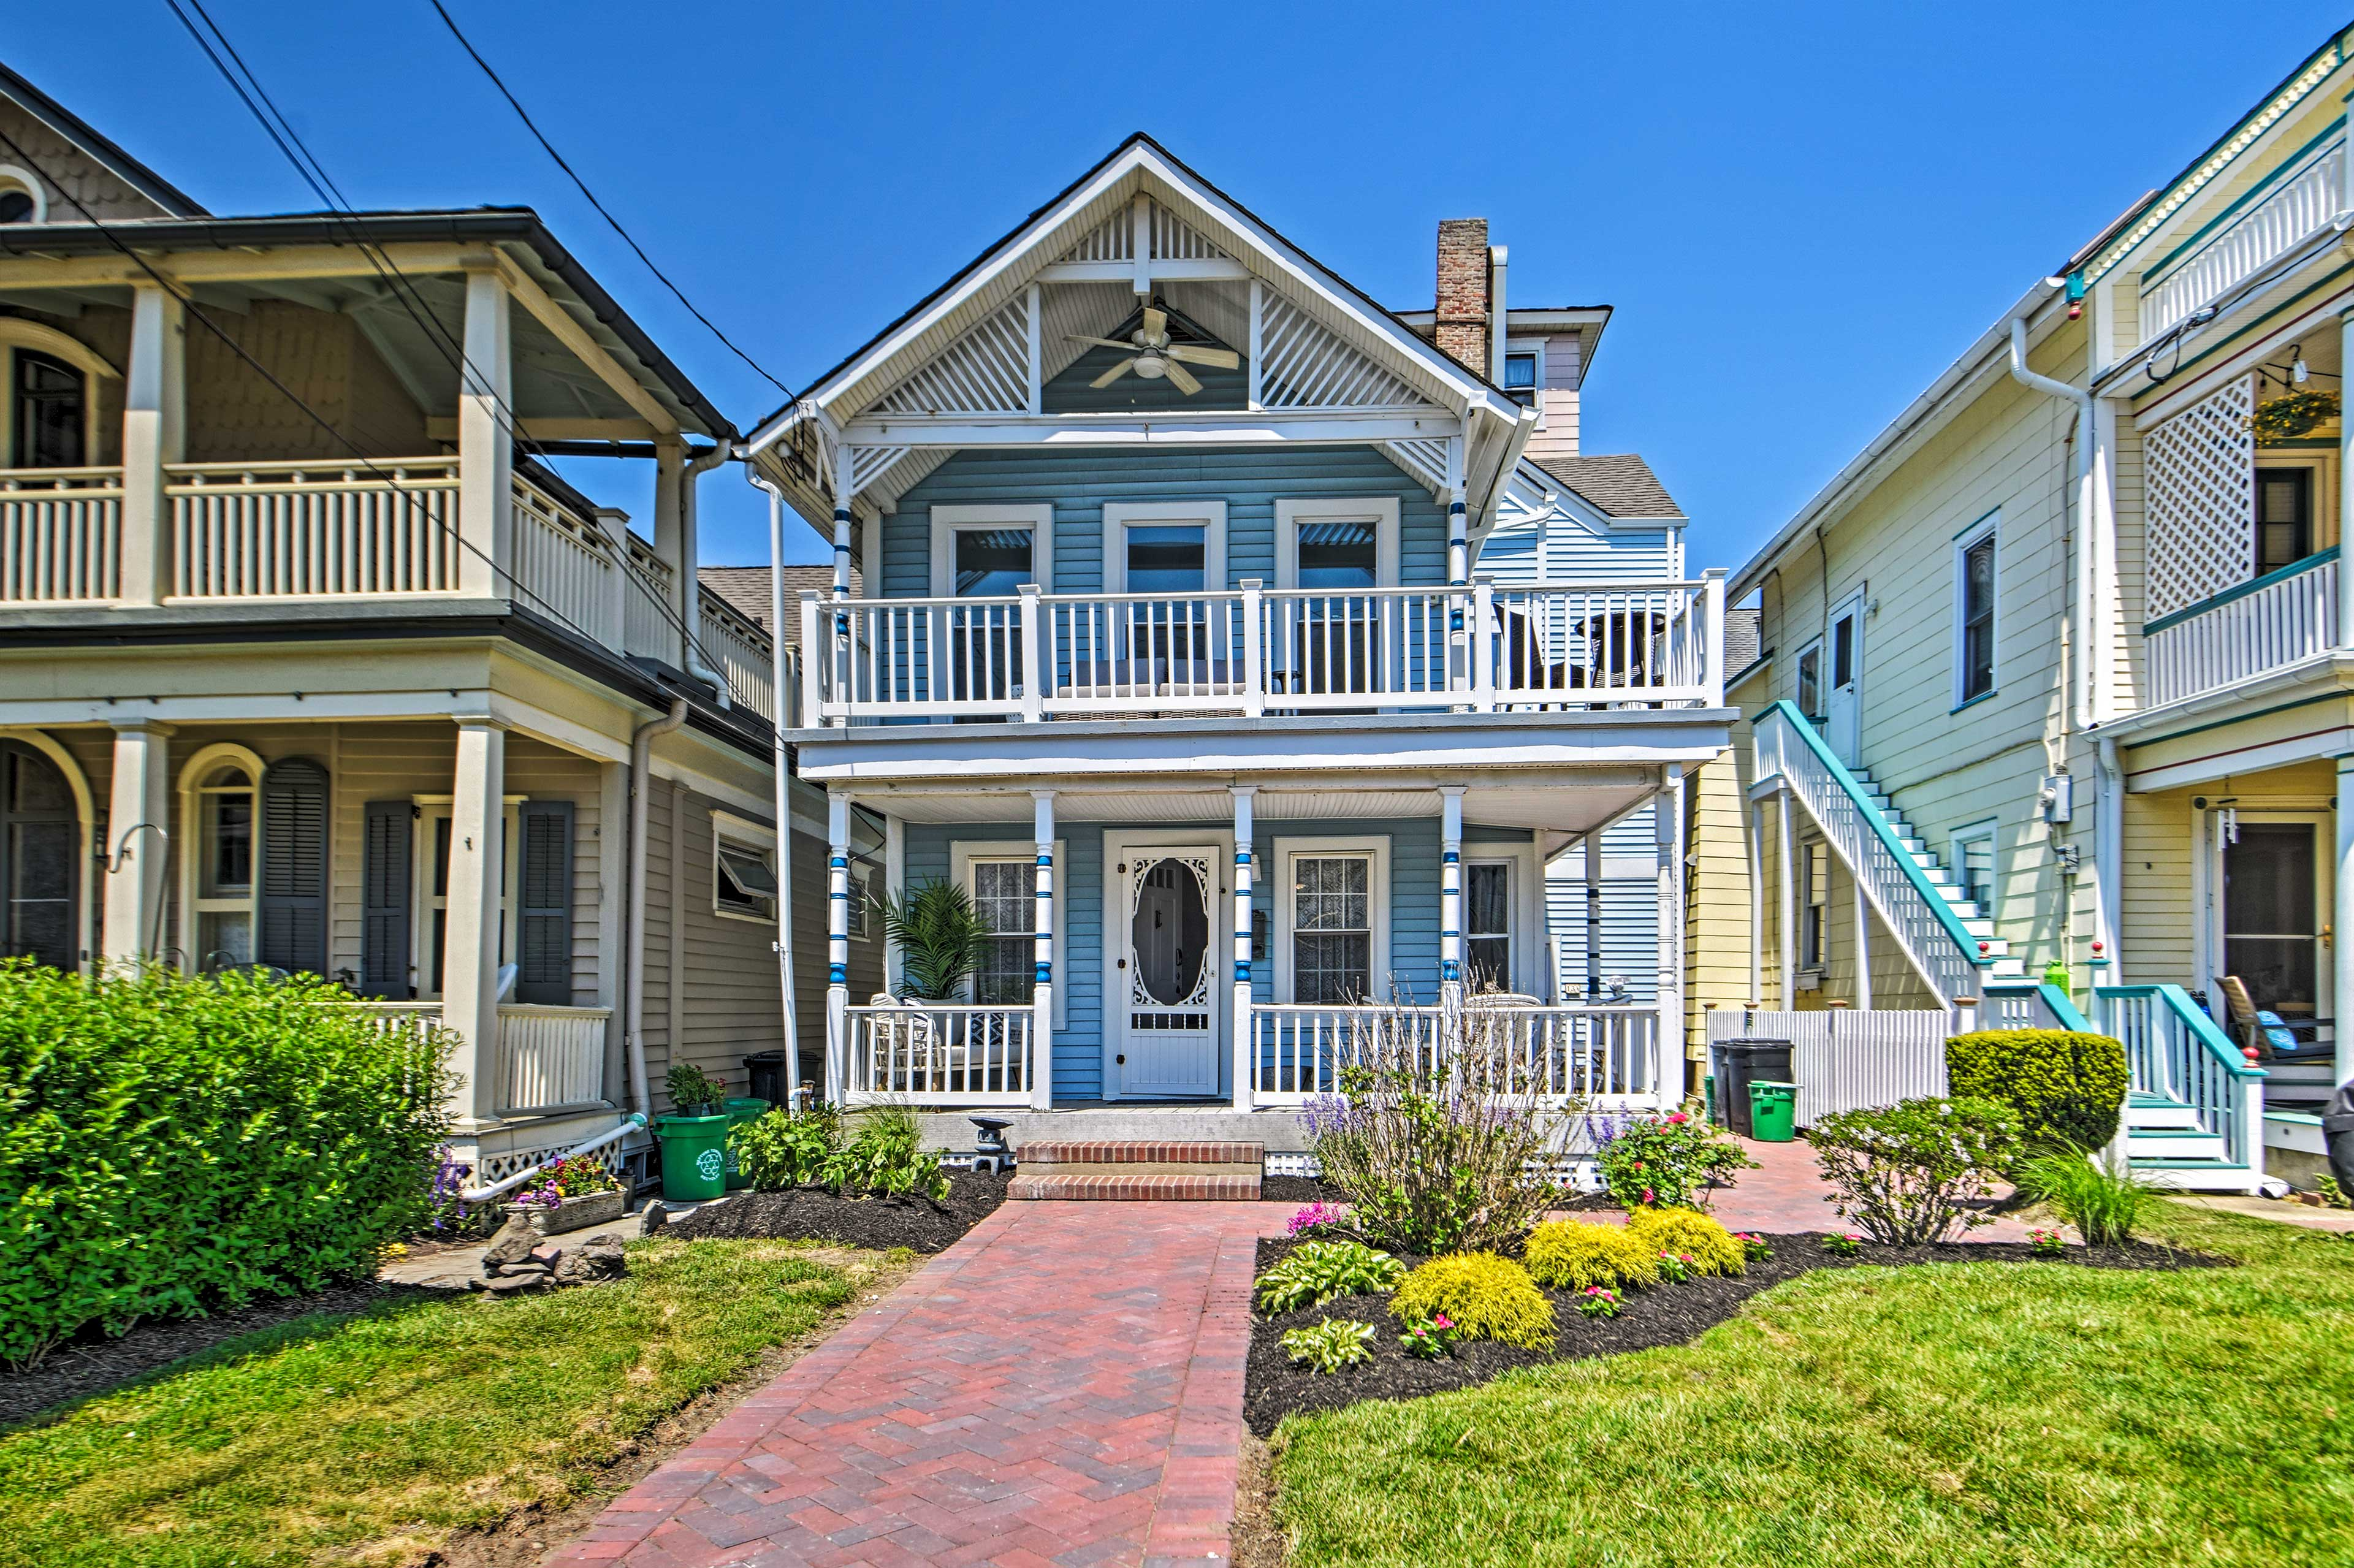 Ocean Grove Vacation Rental | 1BR | 1BA | 800 Sq Ft | Lower-Level Unit